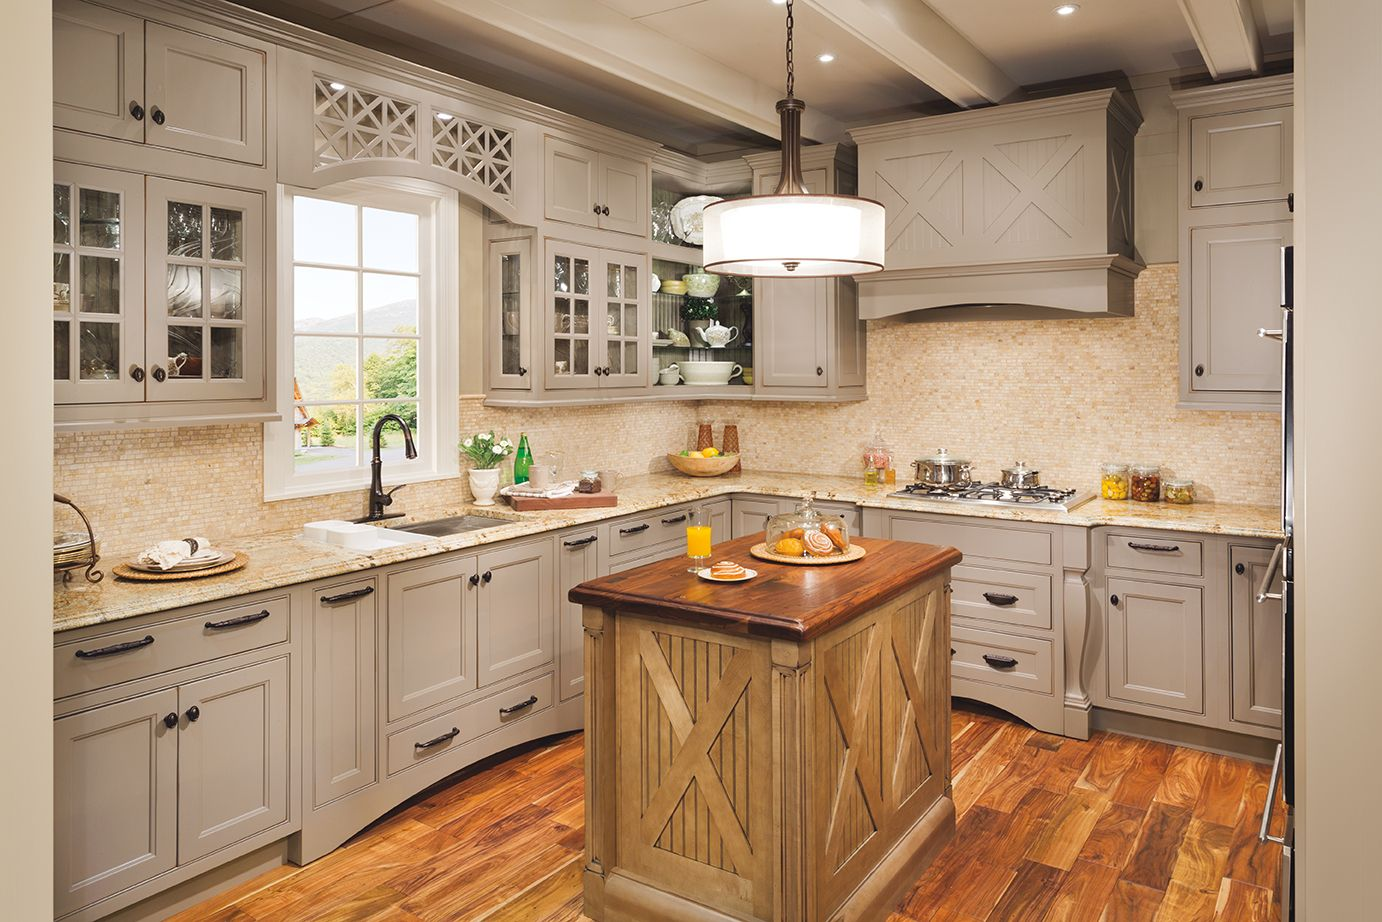 What a beautiful island design the gorgeous wellborn cabinets make